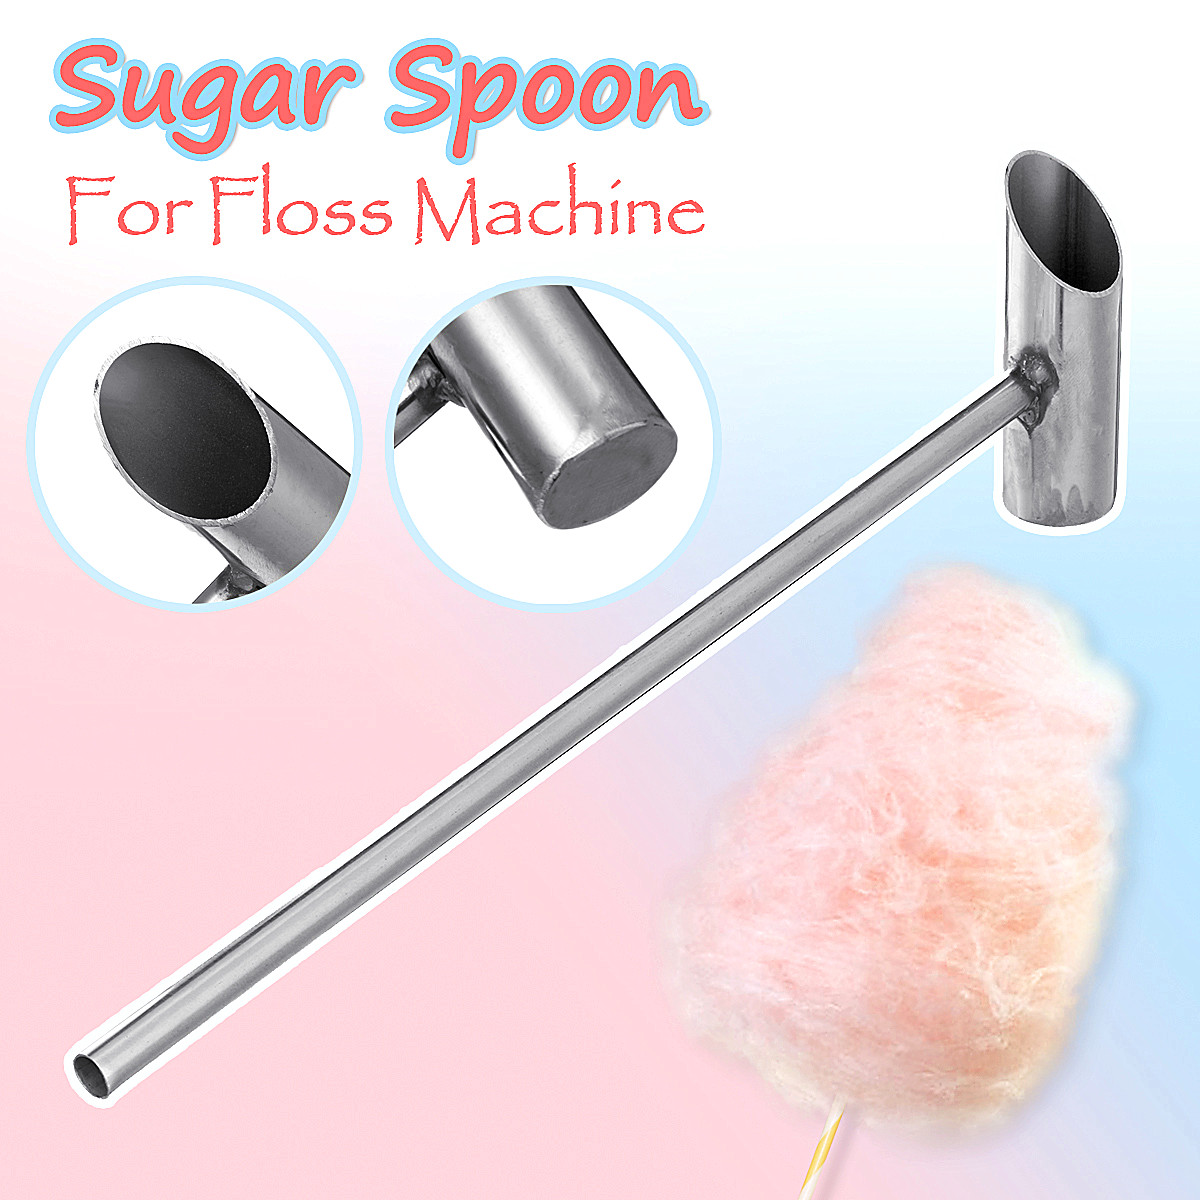 1pc Stainless Steel Sugar Spoon For Candy Floss Cotton Machine Cotton Candy Machine